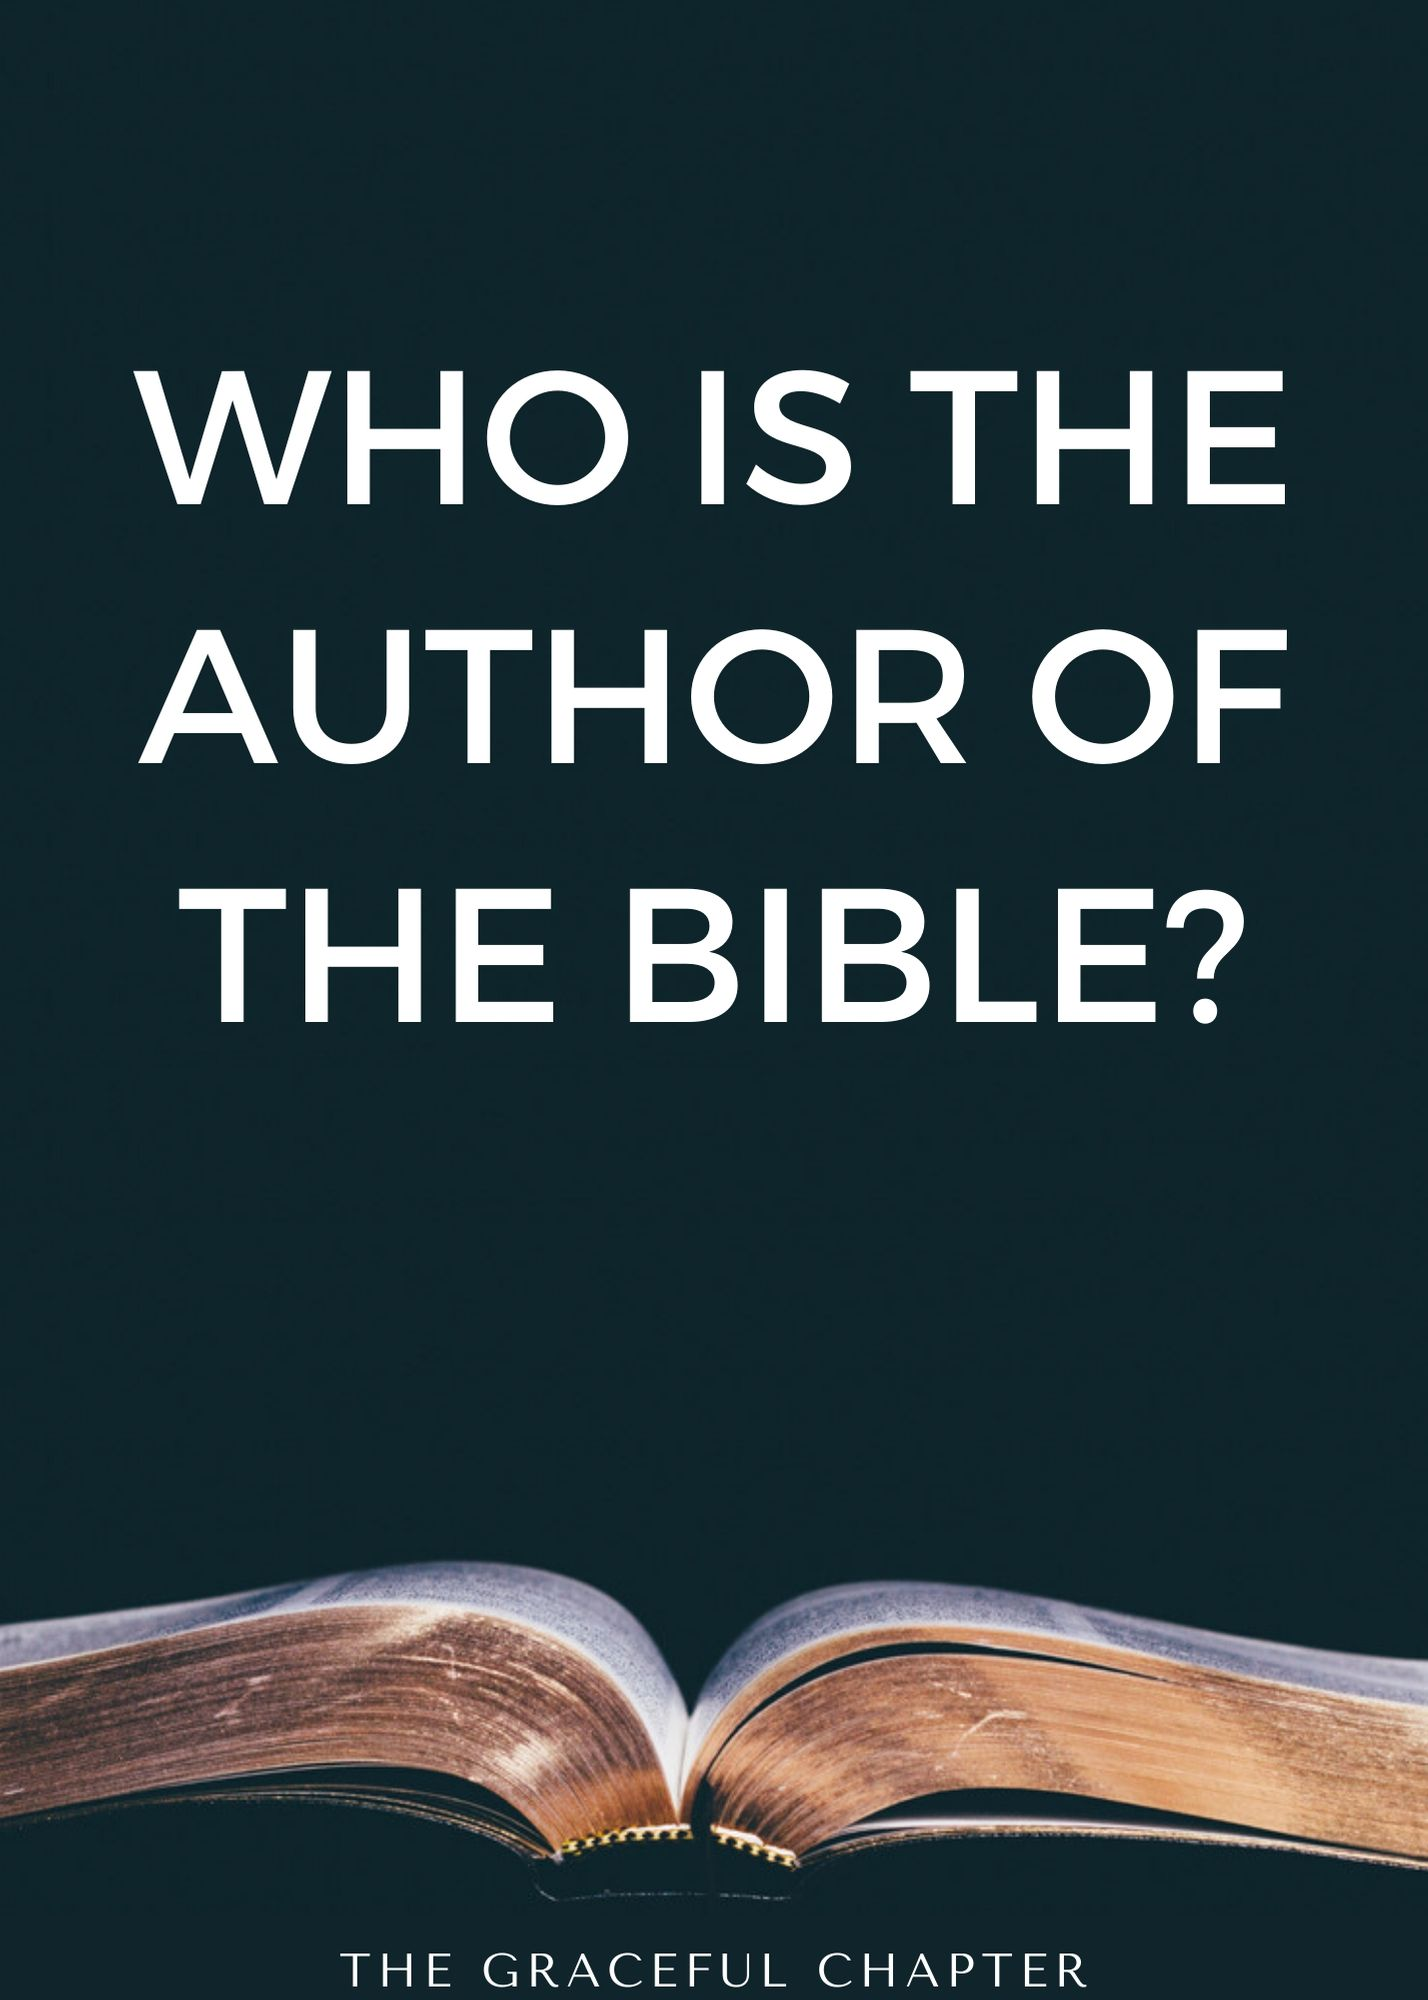 Who is the author of the bible?